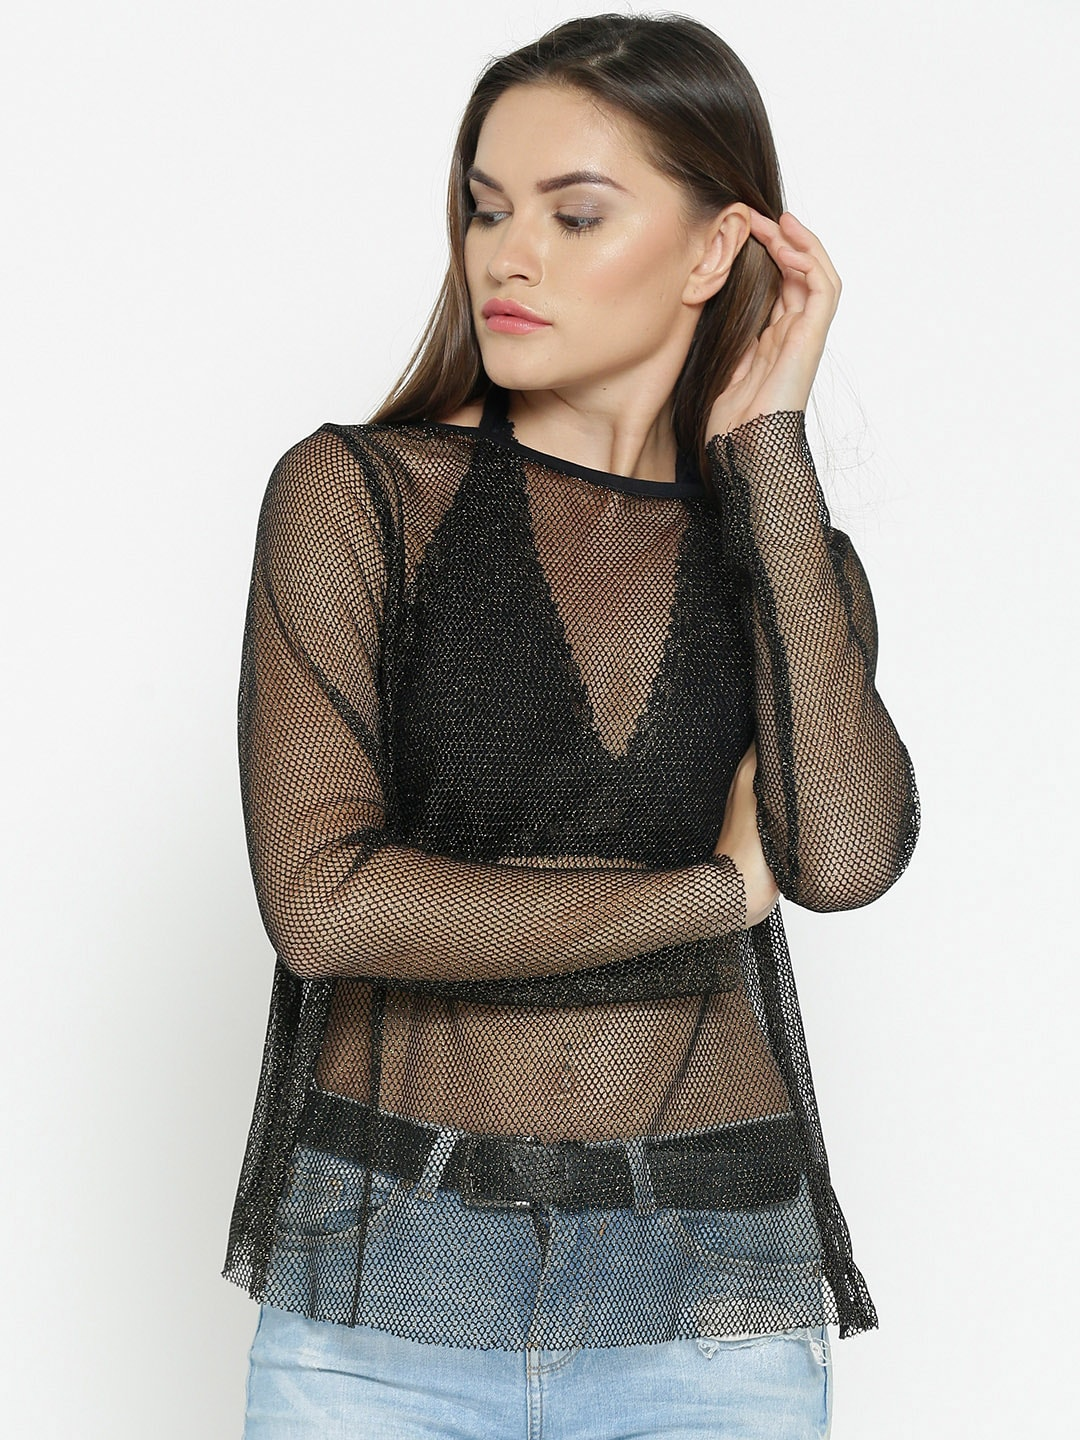 05b91859f3942a Buy Besiva Women Black Solid Sheer Top With Bralette - Tops for ...